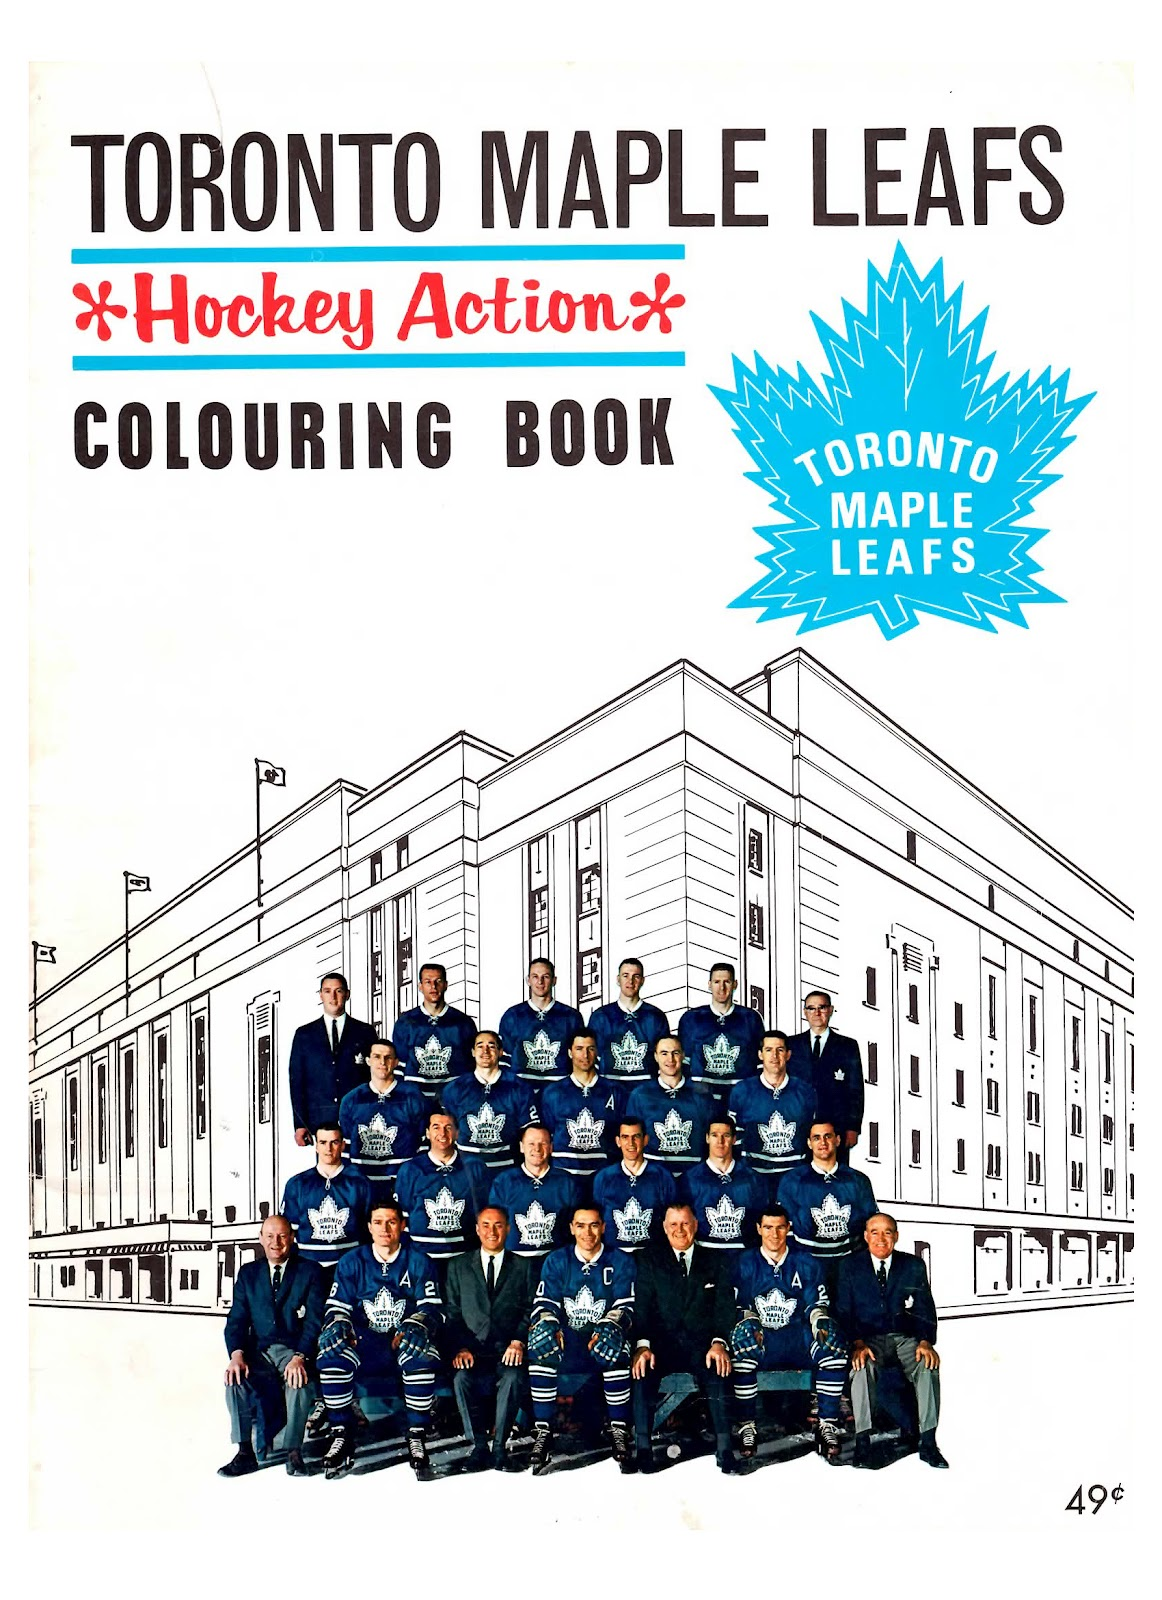 Nitzy S Hockey Den Maple Leafs 1964 Colouring Book Toronto Maple Leafs Coloring Pages